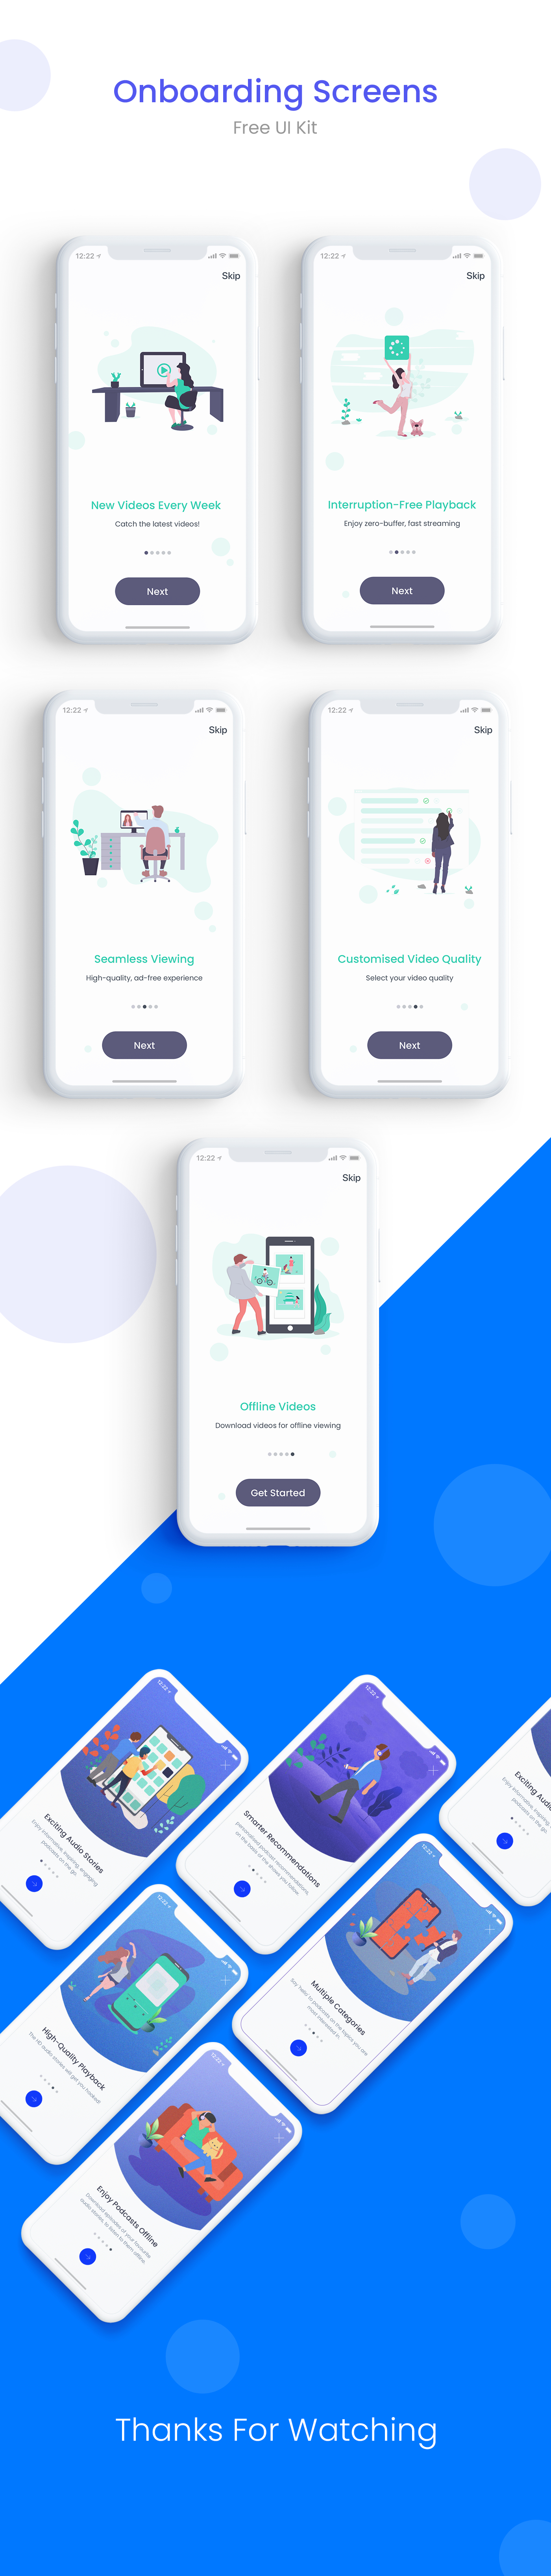 App Onboarding Walkthrough Screens - Elegant and clean illustrations for any kind of app. Easy to edit.